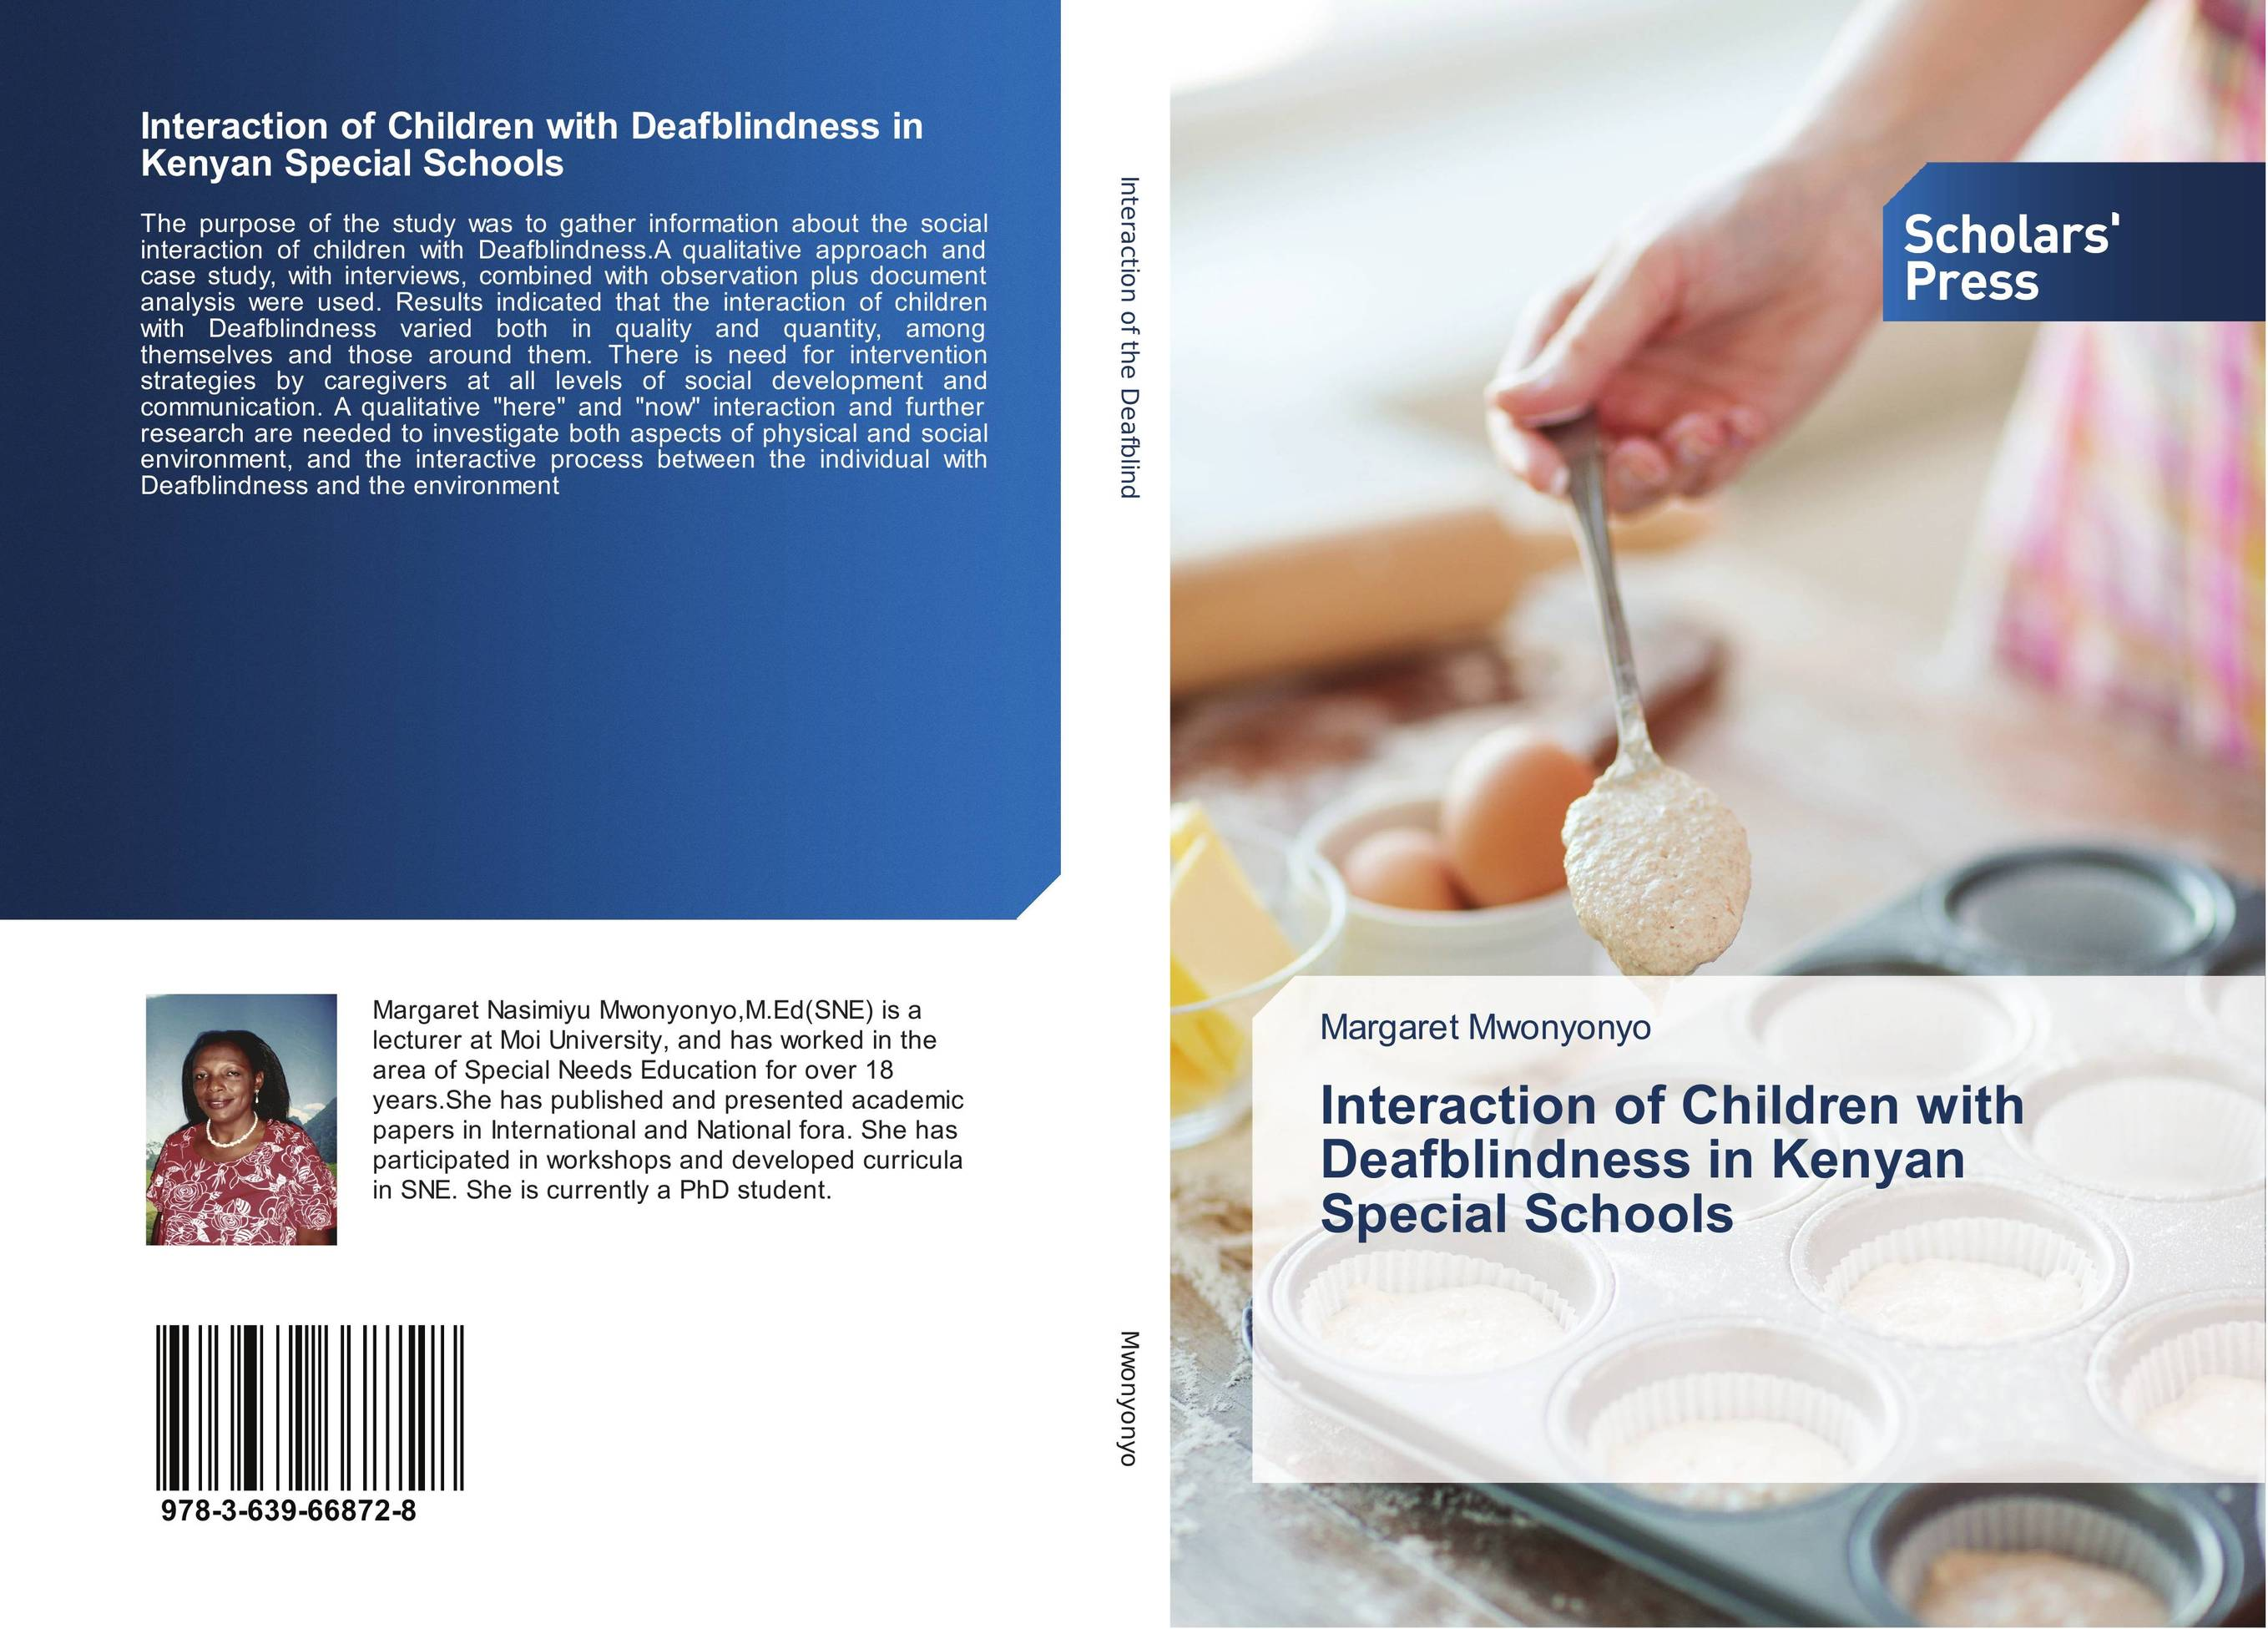 Interaction of Children with Deafblindness in Kenyan Special Schools manisha sharma ajit varma and harsha kharkwal interaction of symbiotic fungus with fenugreek